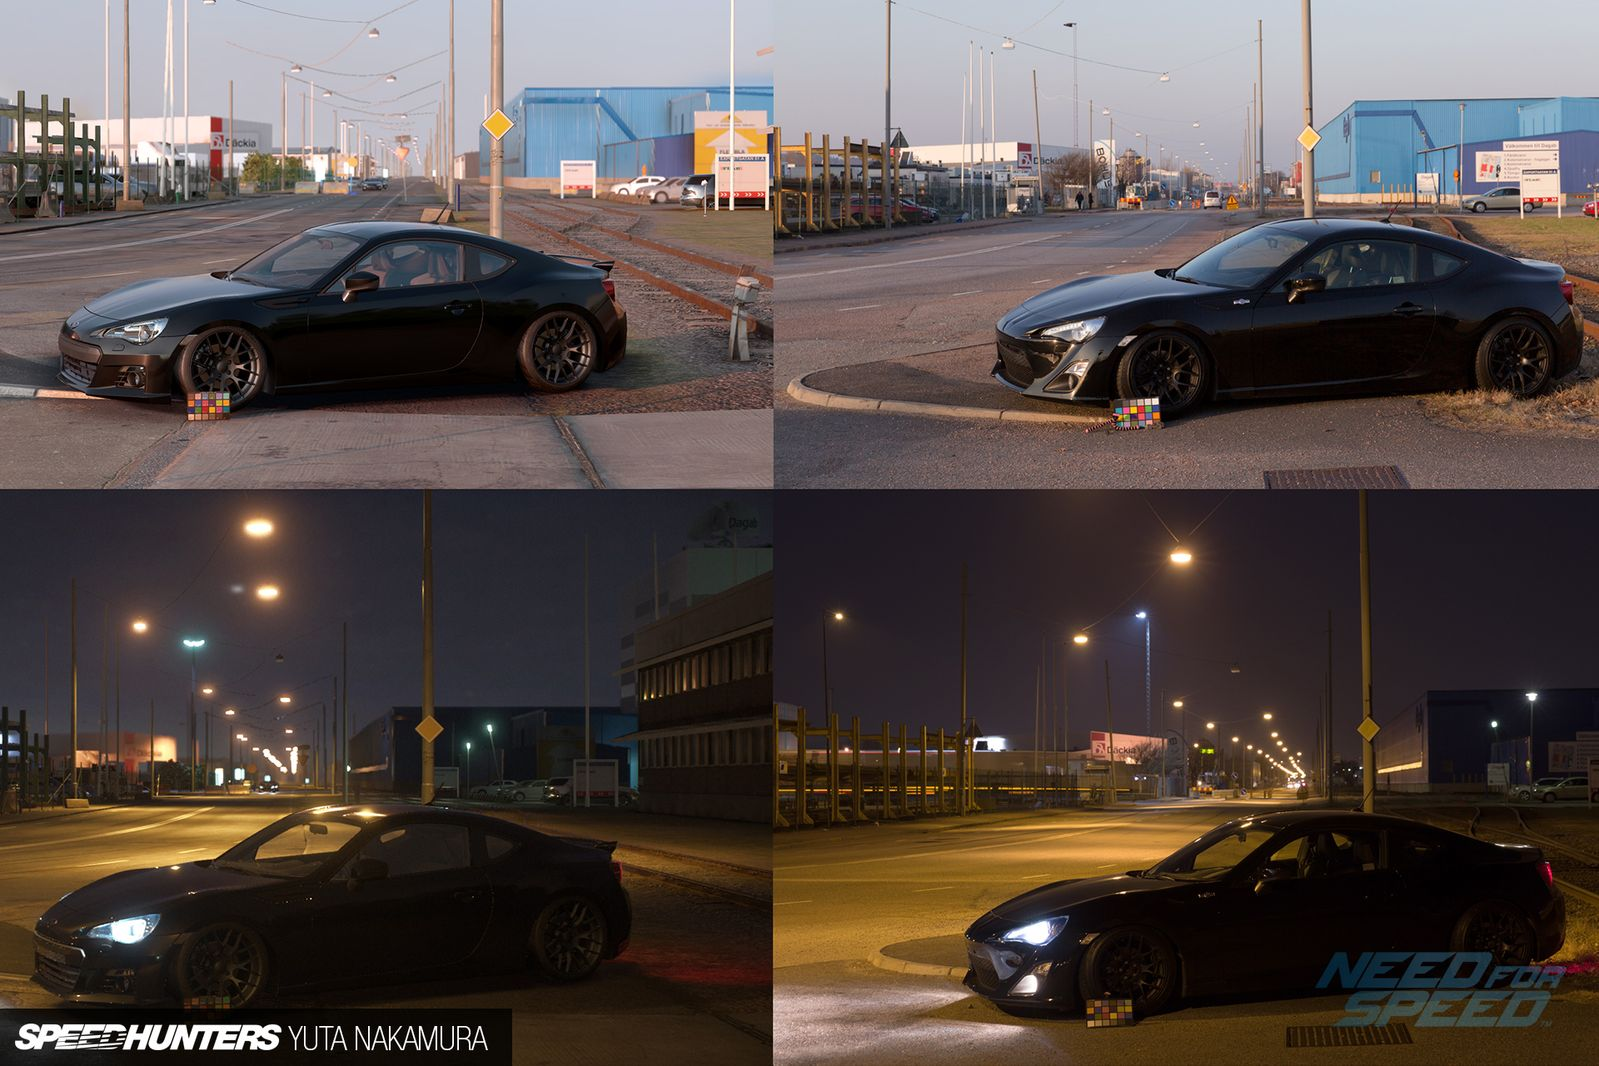 Need for Speed Left side game render engine, right side are real photos